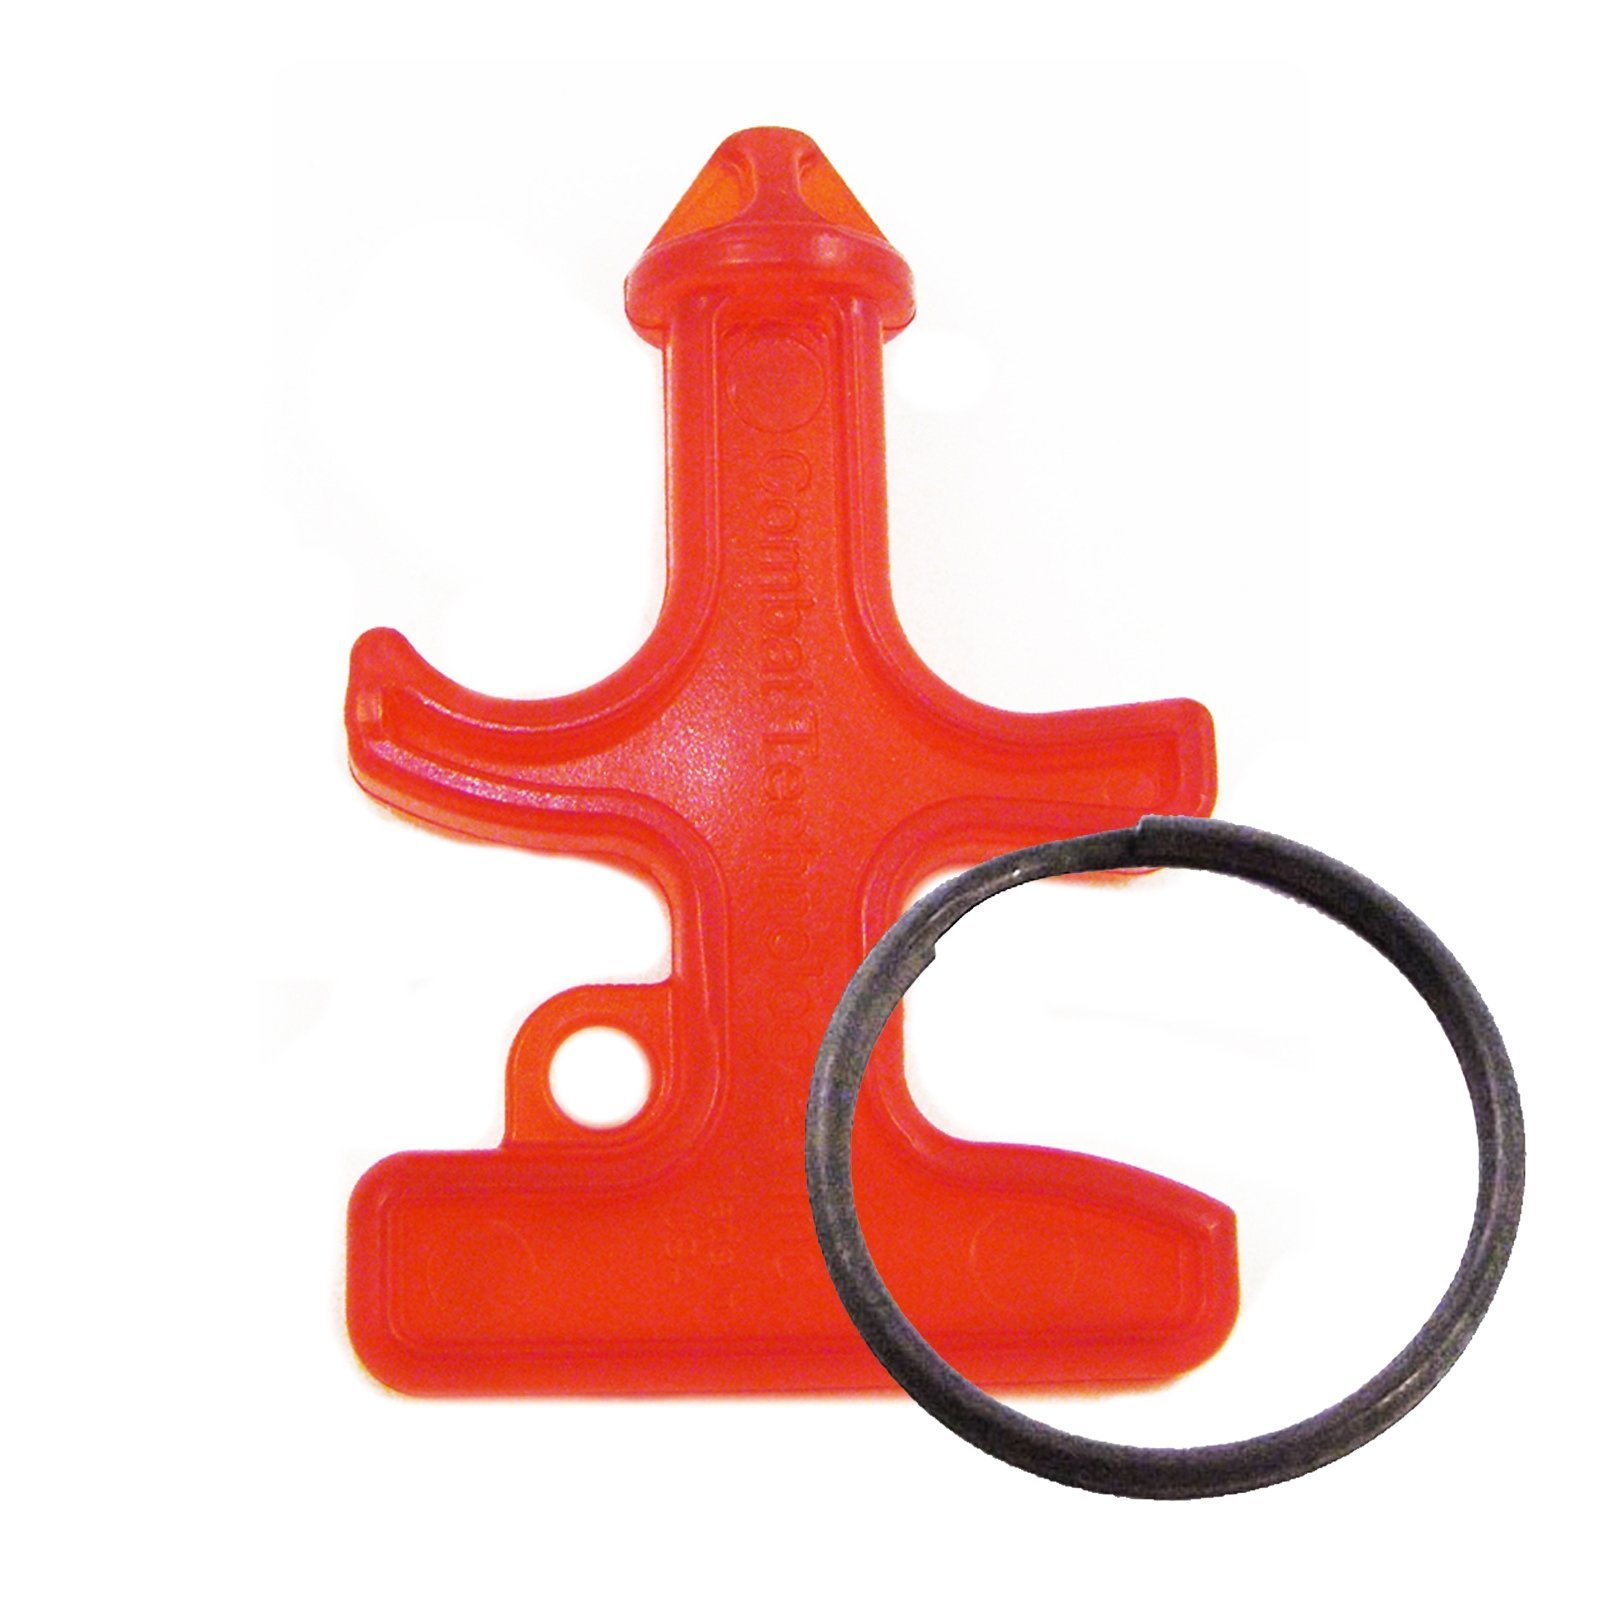 Comtech James Keating Self Defense Manipulator Key Chain Stinger Red